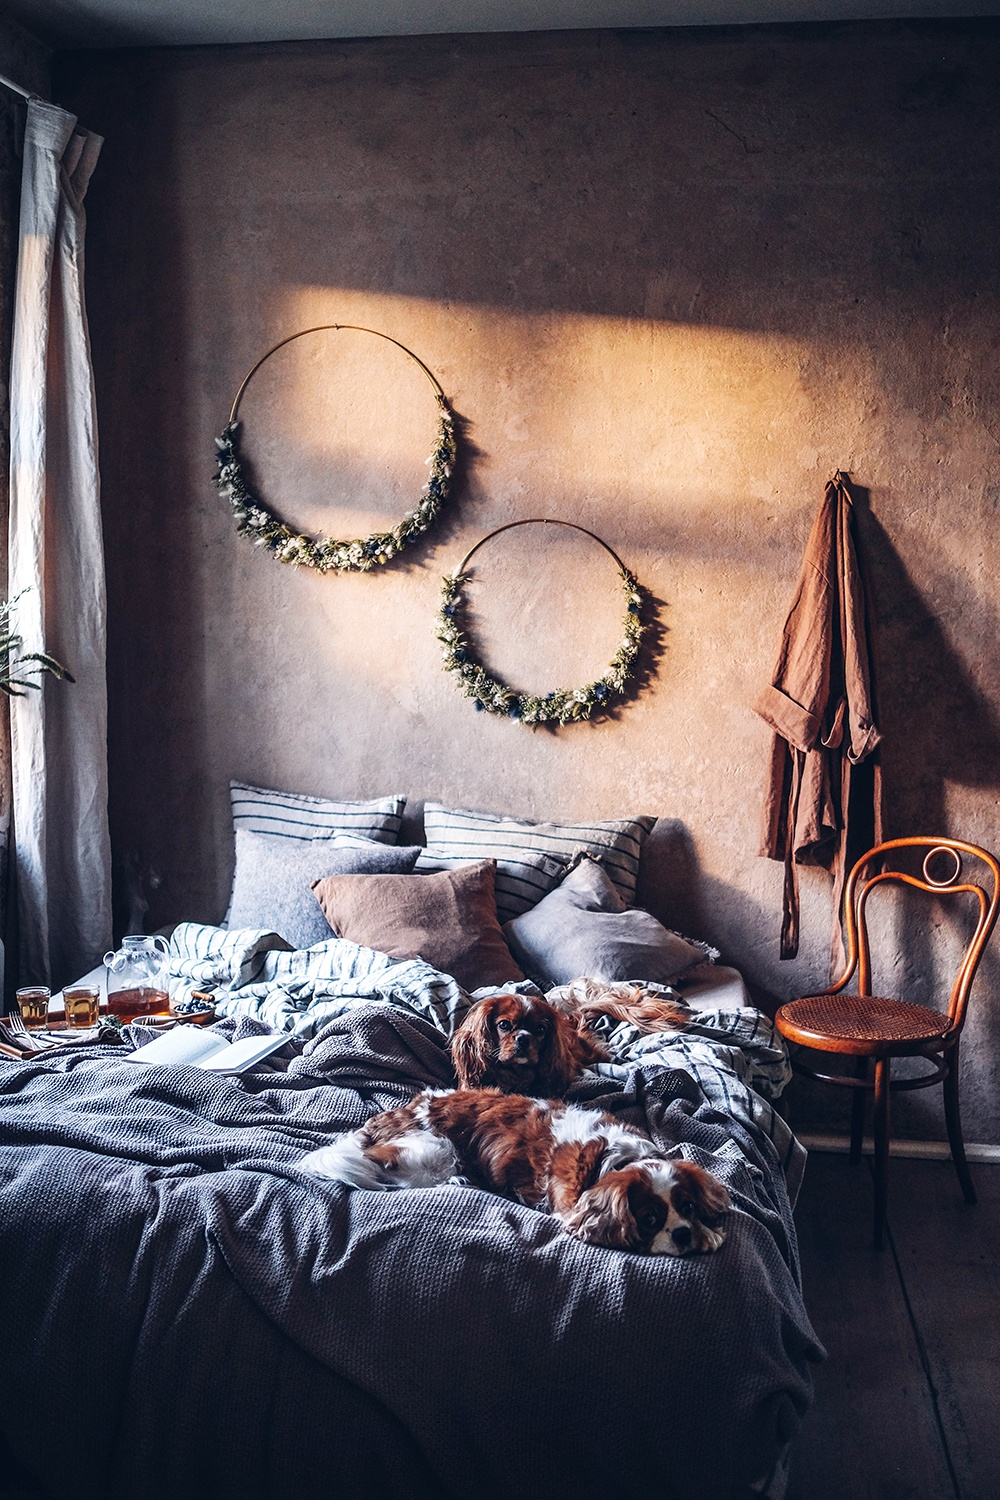 The Coziest Bed Linen From Lovely Linen And A Gluten Free Dutch Baby Our Food Stories